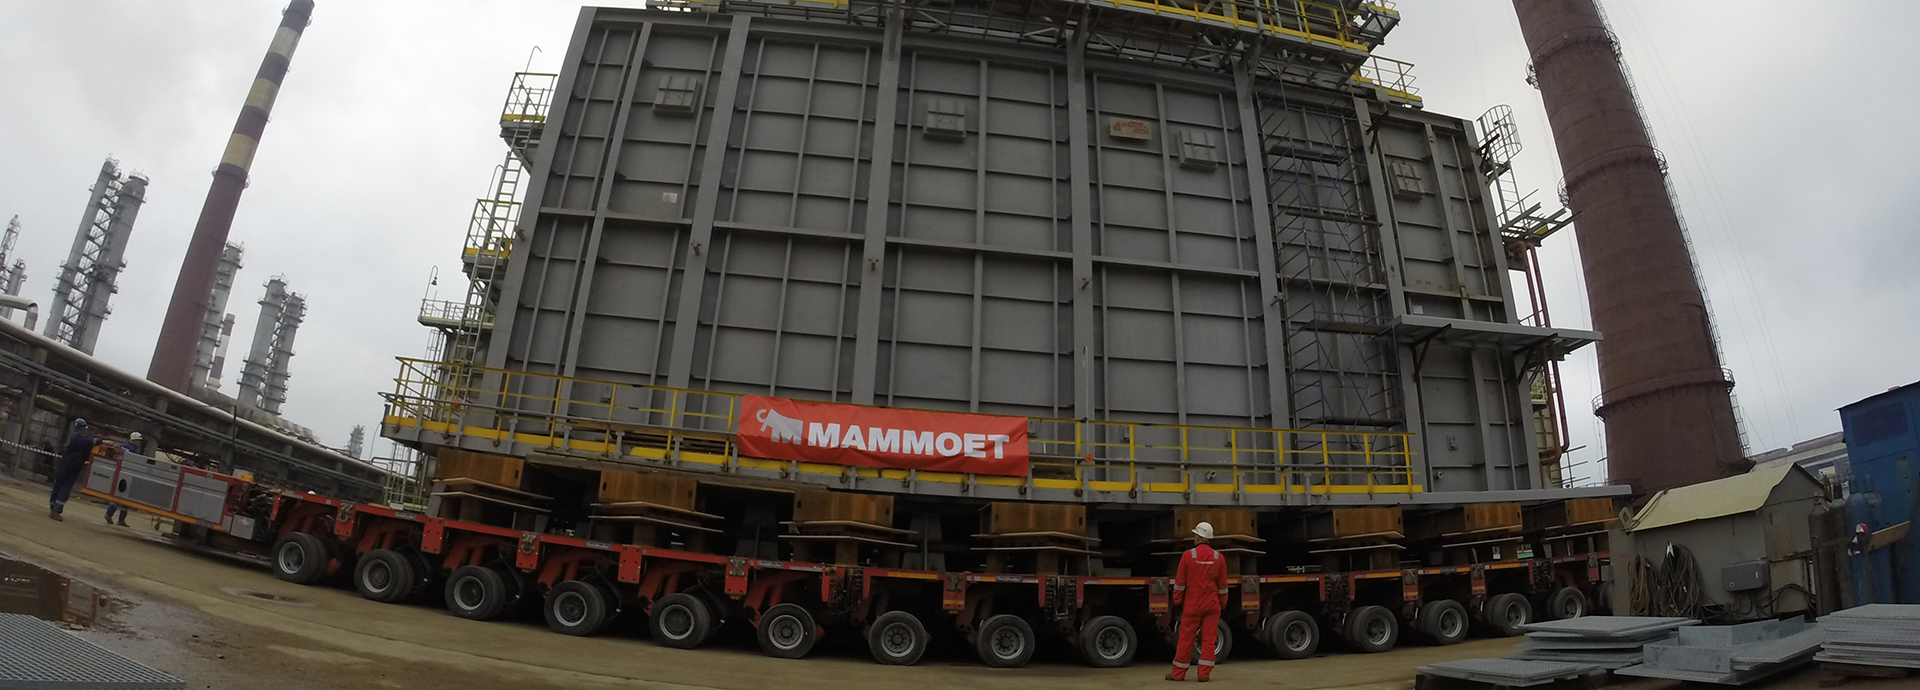 Mammoet - The Biggest Thing We Move Is Time